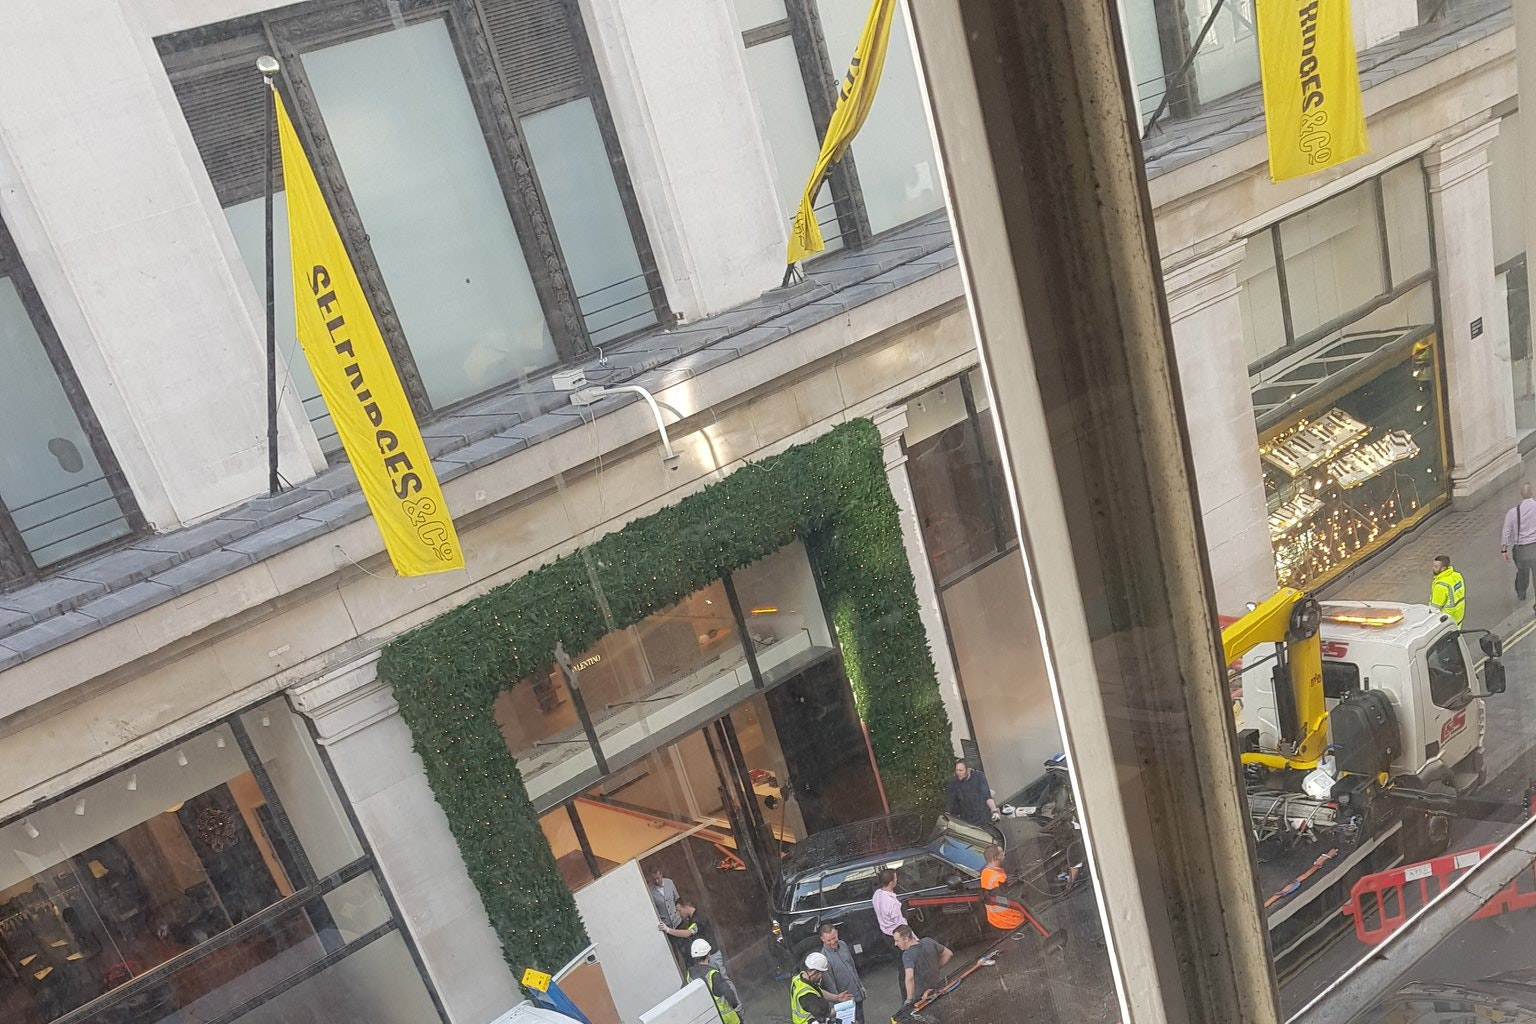 Armed group use car to launch smash raid at luxury Oxford Street store